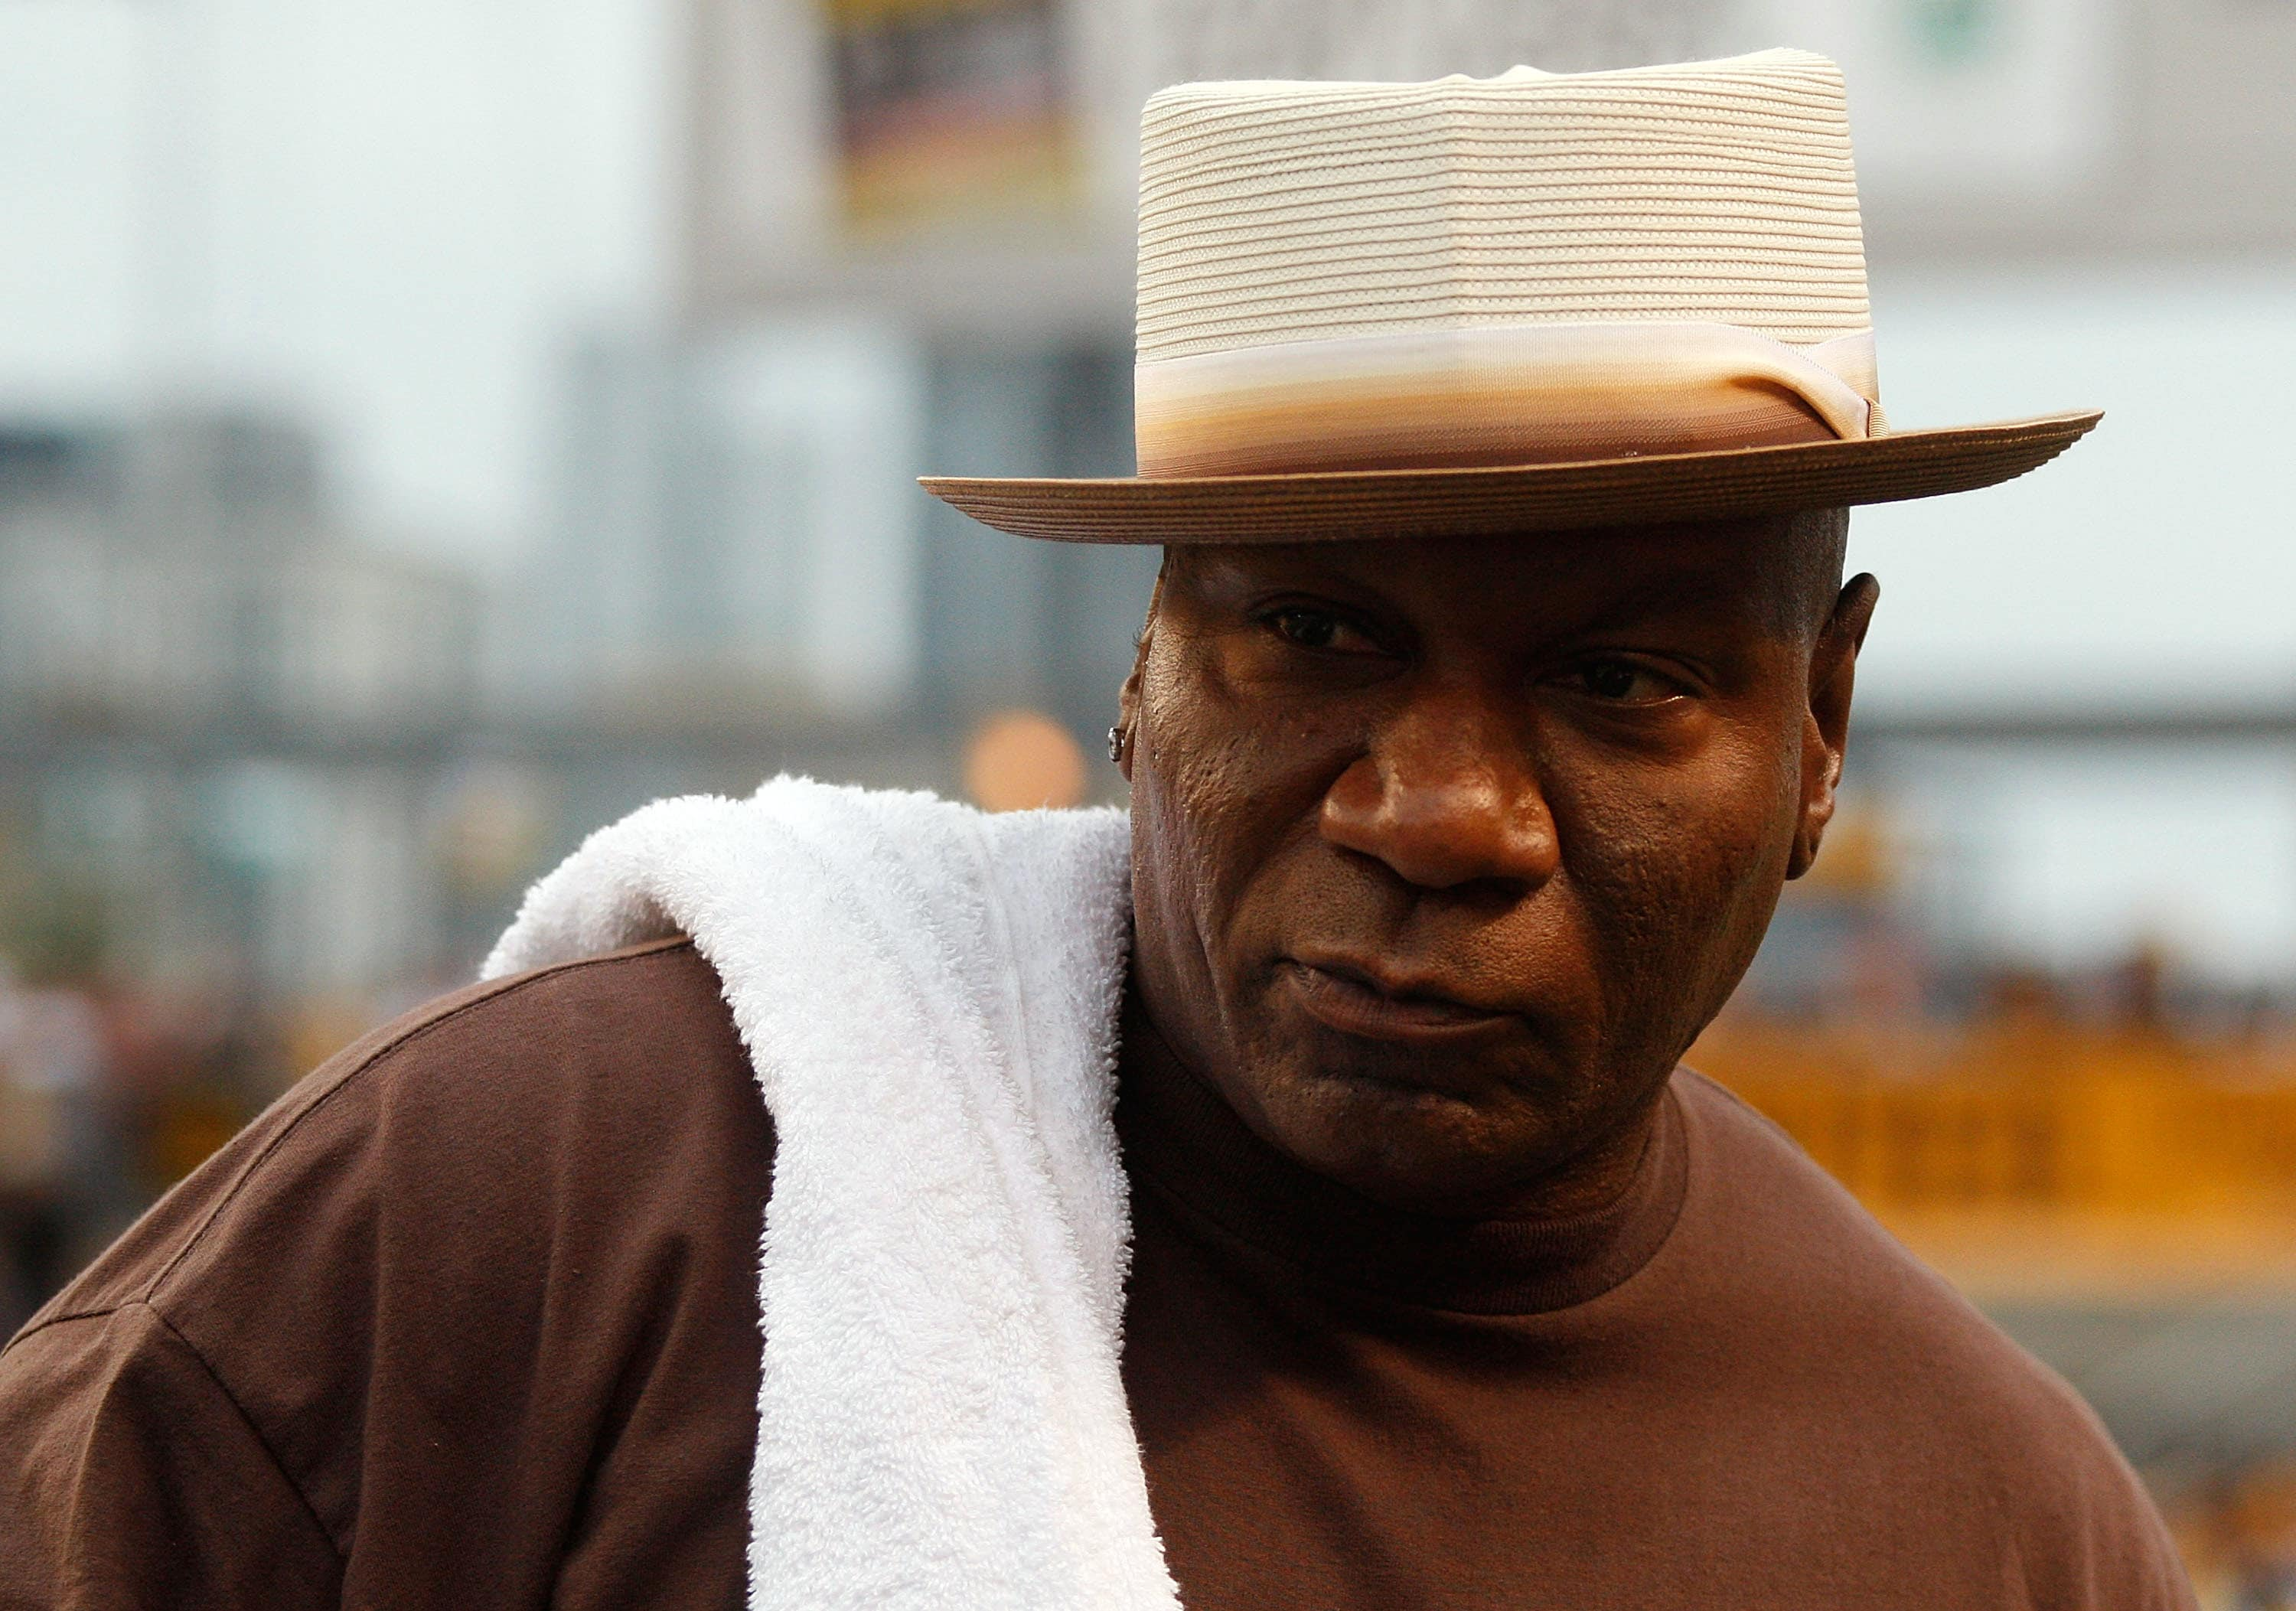 Mission: Impossible's Ving Rhames mistaken for burglar in his own home